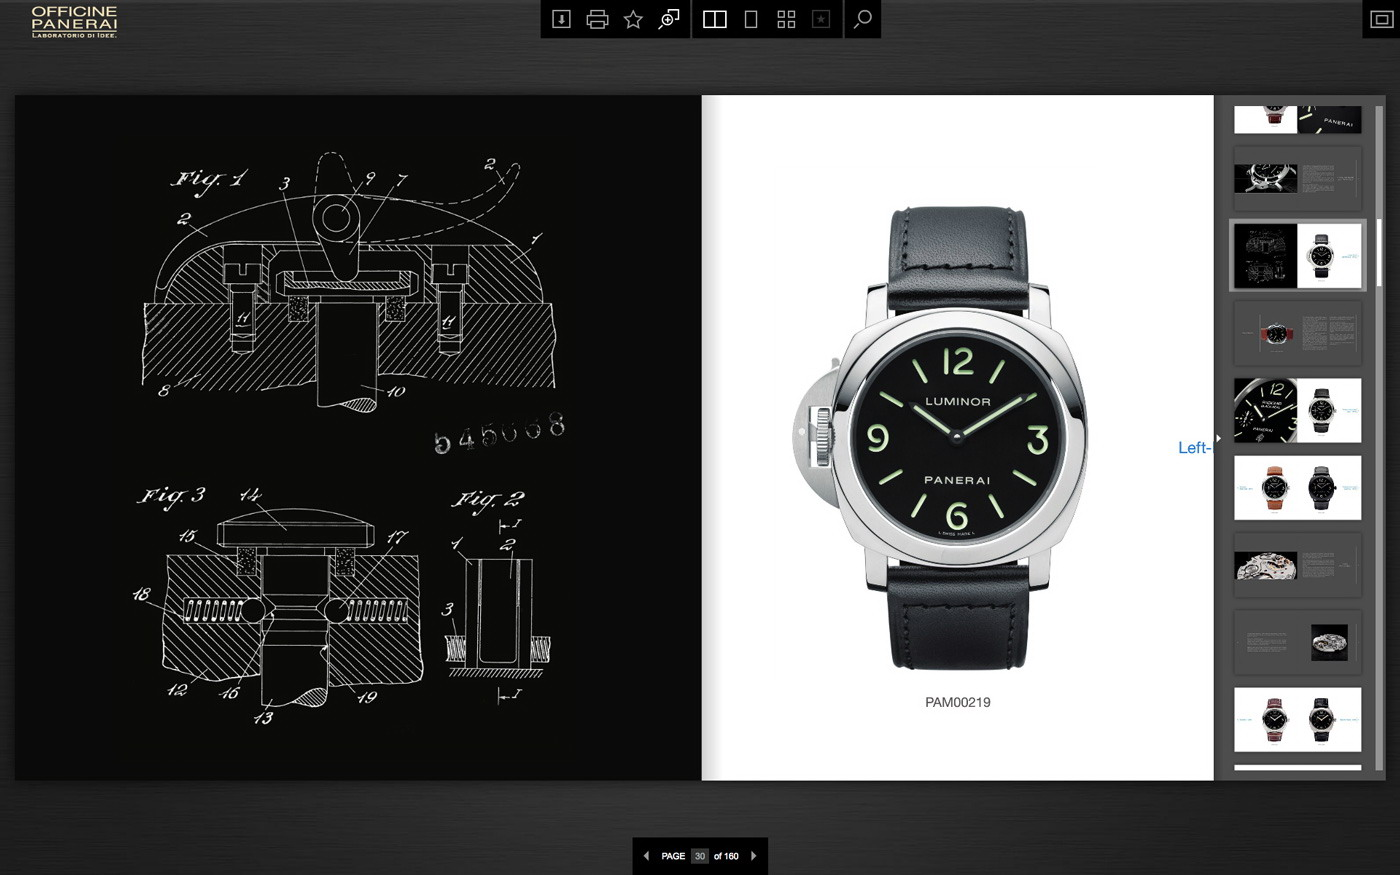 Officine panerai it 39 s time to be digital for Officine panerai milano